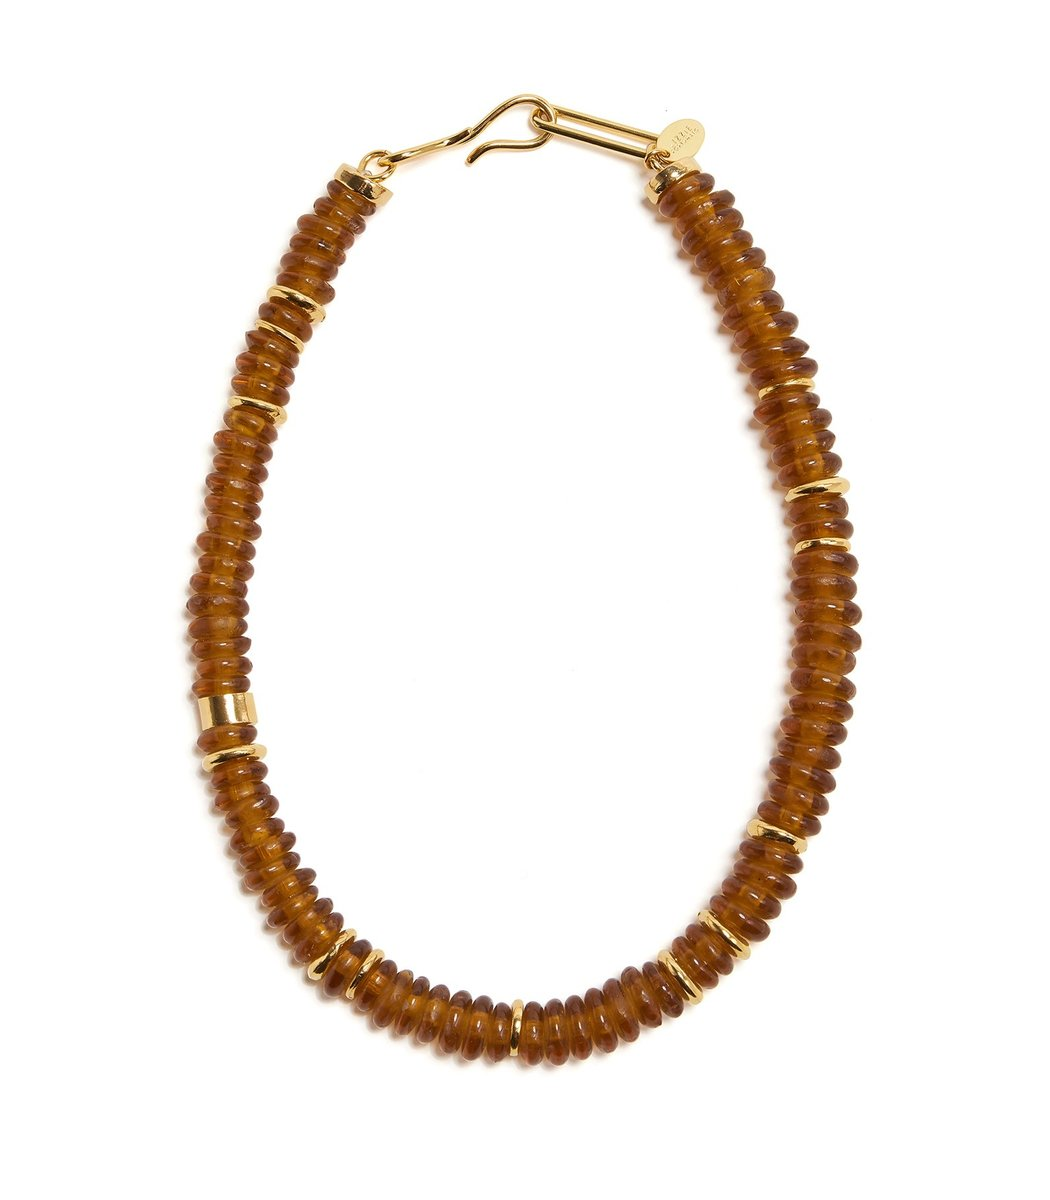 Lizzie Fortunato Laguna Necklace in Honey